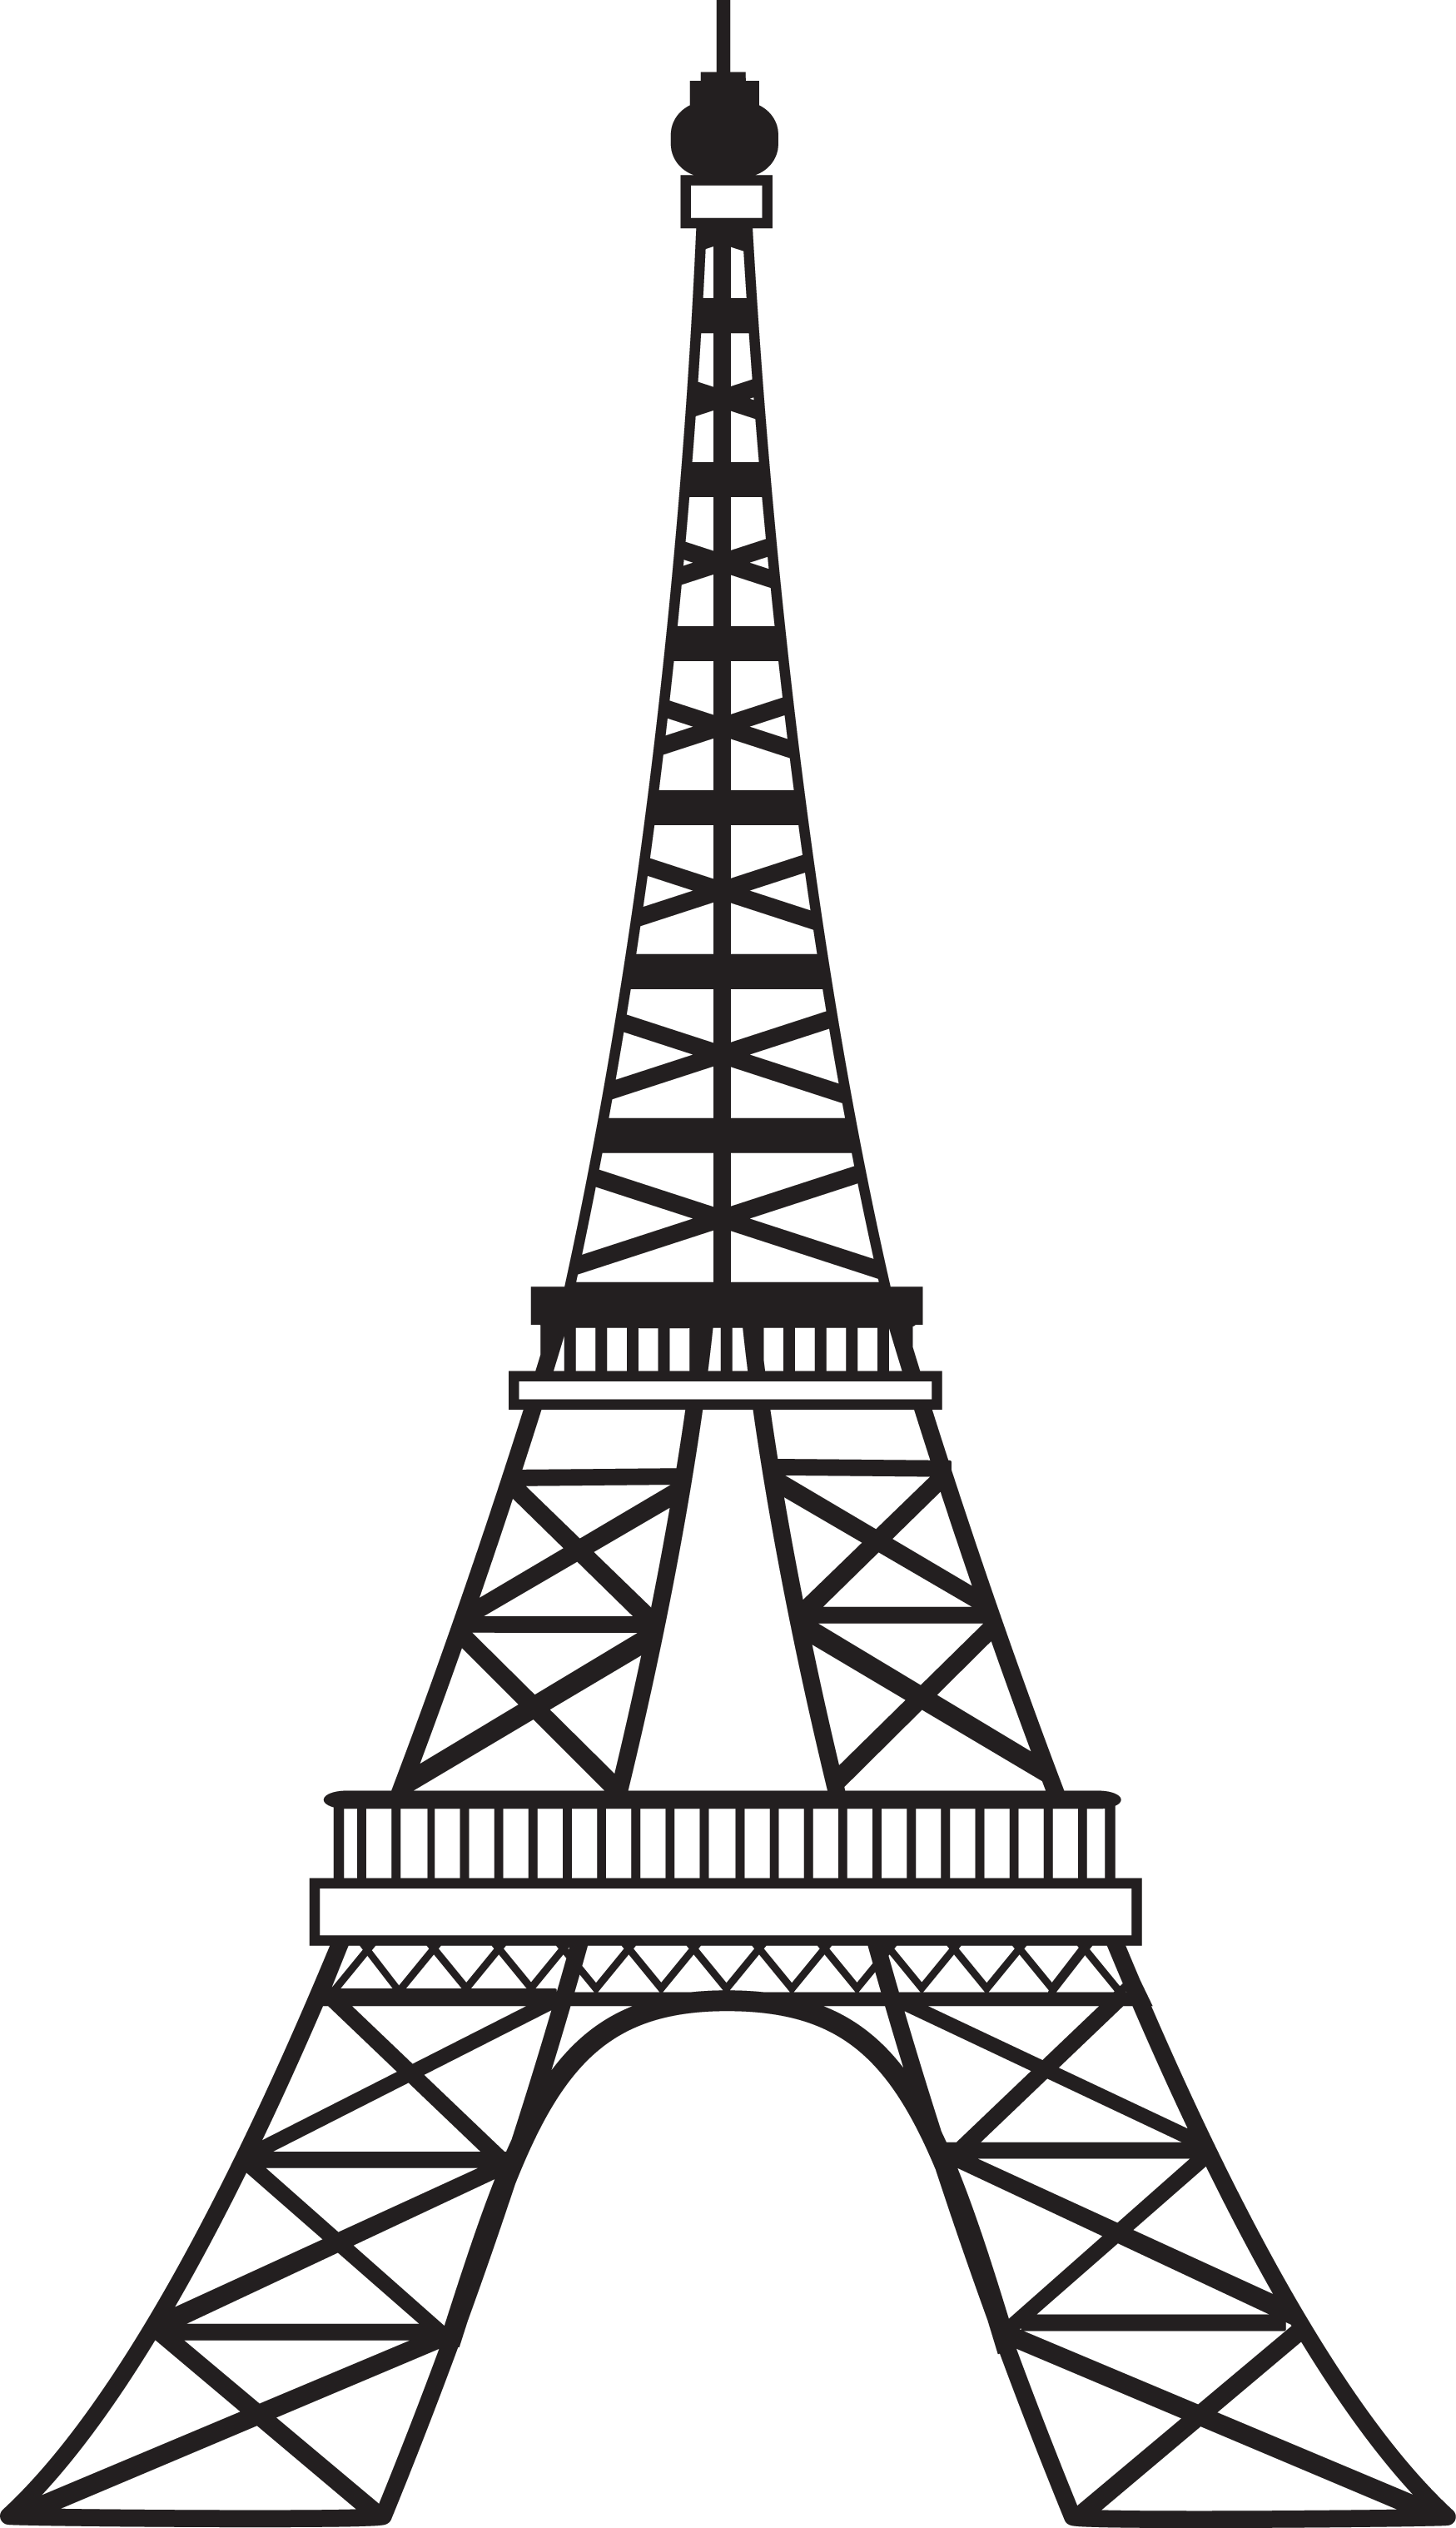 download eiffel tower png image png image pngimg #18001